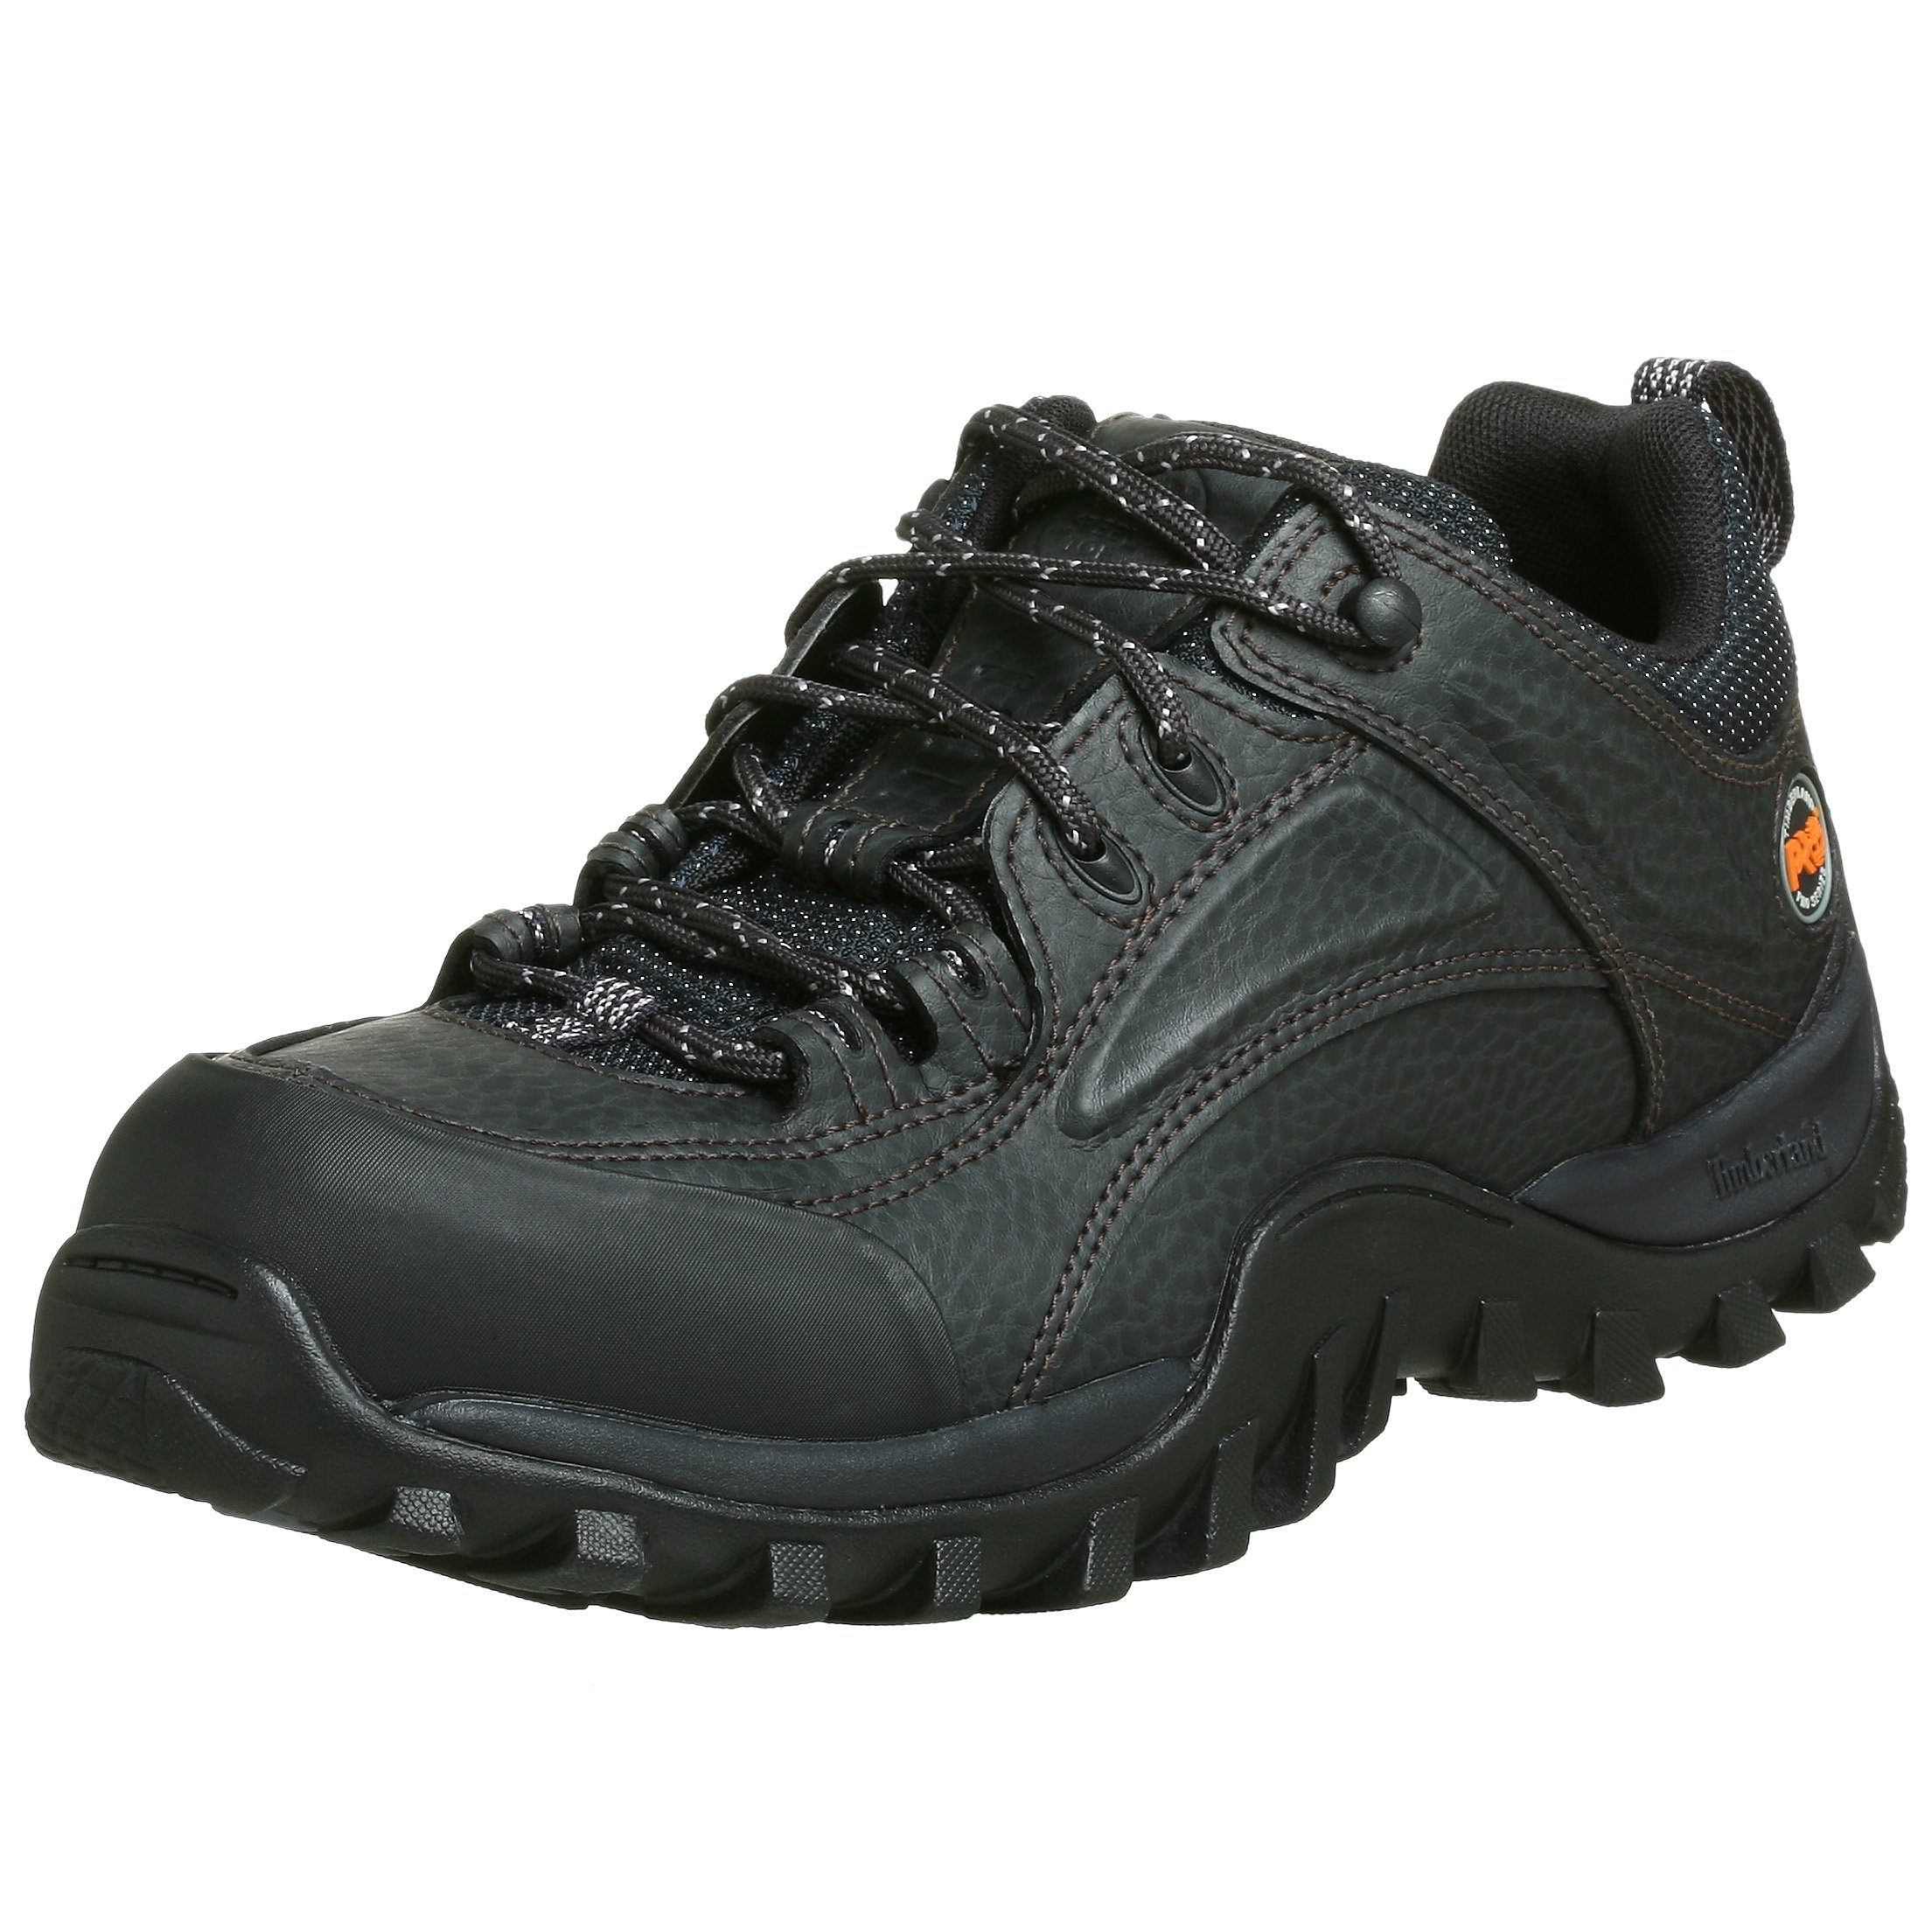 1352a13ade5c9 Cheap Timberland Low, find Timberland Low deals on line at Alibaba.com